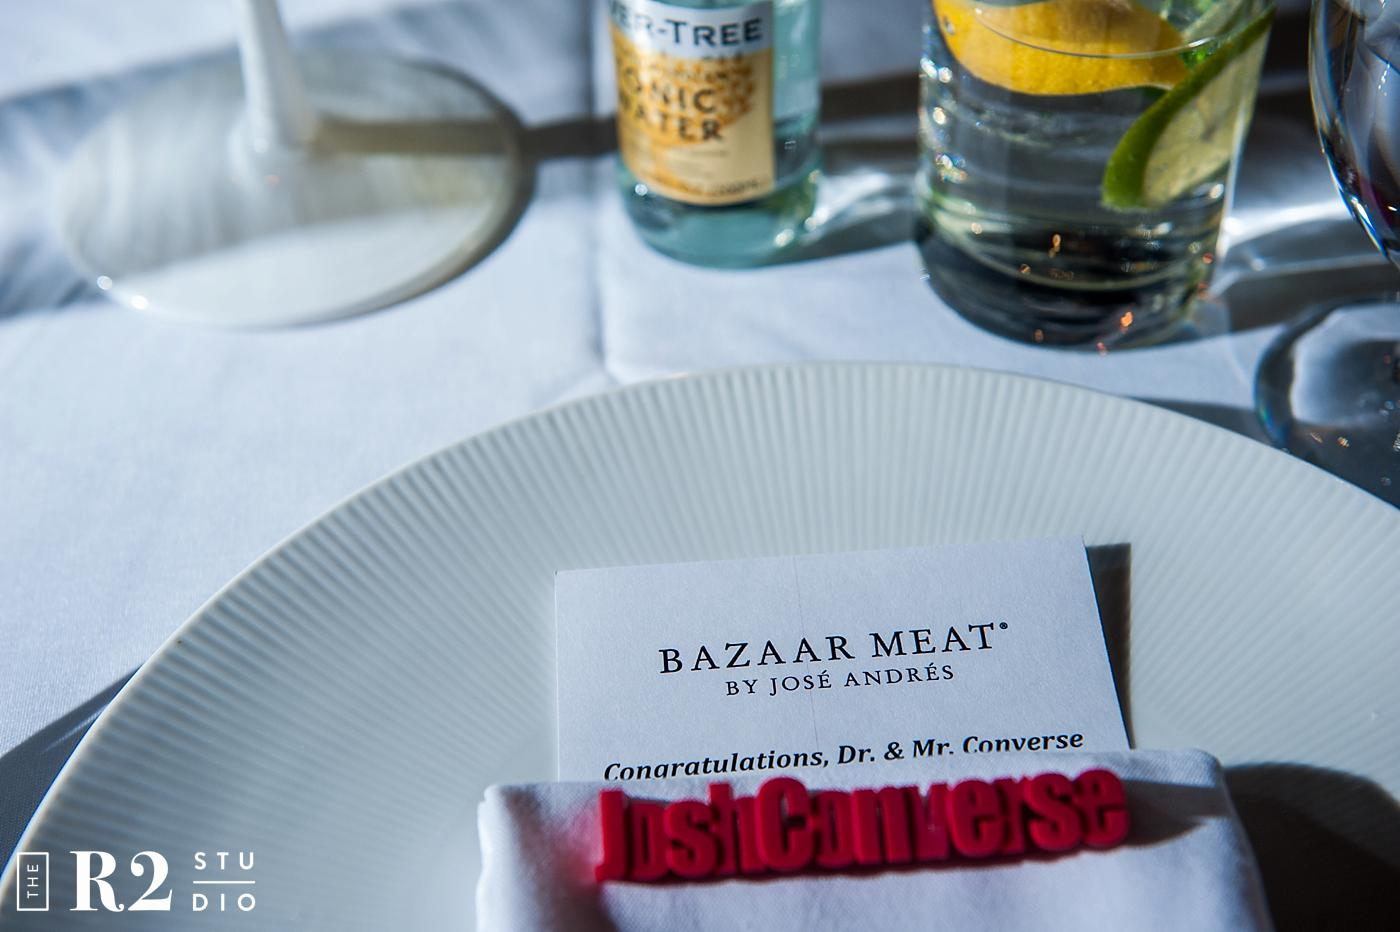 #slslasvegaswedding #slslasvegas #placecards #weddingmenu #weddingplacesetting #weddingreception #bazaarmeats #desirableeventsbydesi, #weddingplannerlasvegas,#lasvegasweddingcoordinators,#weddingcoordinatorslasvegas,#weddingcoordinatorlasvegas,#lasvegasweddingplanner #desirableeventsbydesi #Tropicanawedding #wedding, #love, #lovewins, #samesexwedding, #gaywedding, #tropicana, #lasvegaswedding, #weddinglasvegas, #weddingplannerslasvegas, #lasvegasweddingplanners, # layersoflovely, #lasvegaswedding, #susieandwill, #rusticwedding, #wedding, #historic5thstreetschool, #downtownlasvegas, #sls, #sayersclub, #bazaarmeats, #slslv, #slslasvegas #slsweddings, #lasvegasweddings,